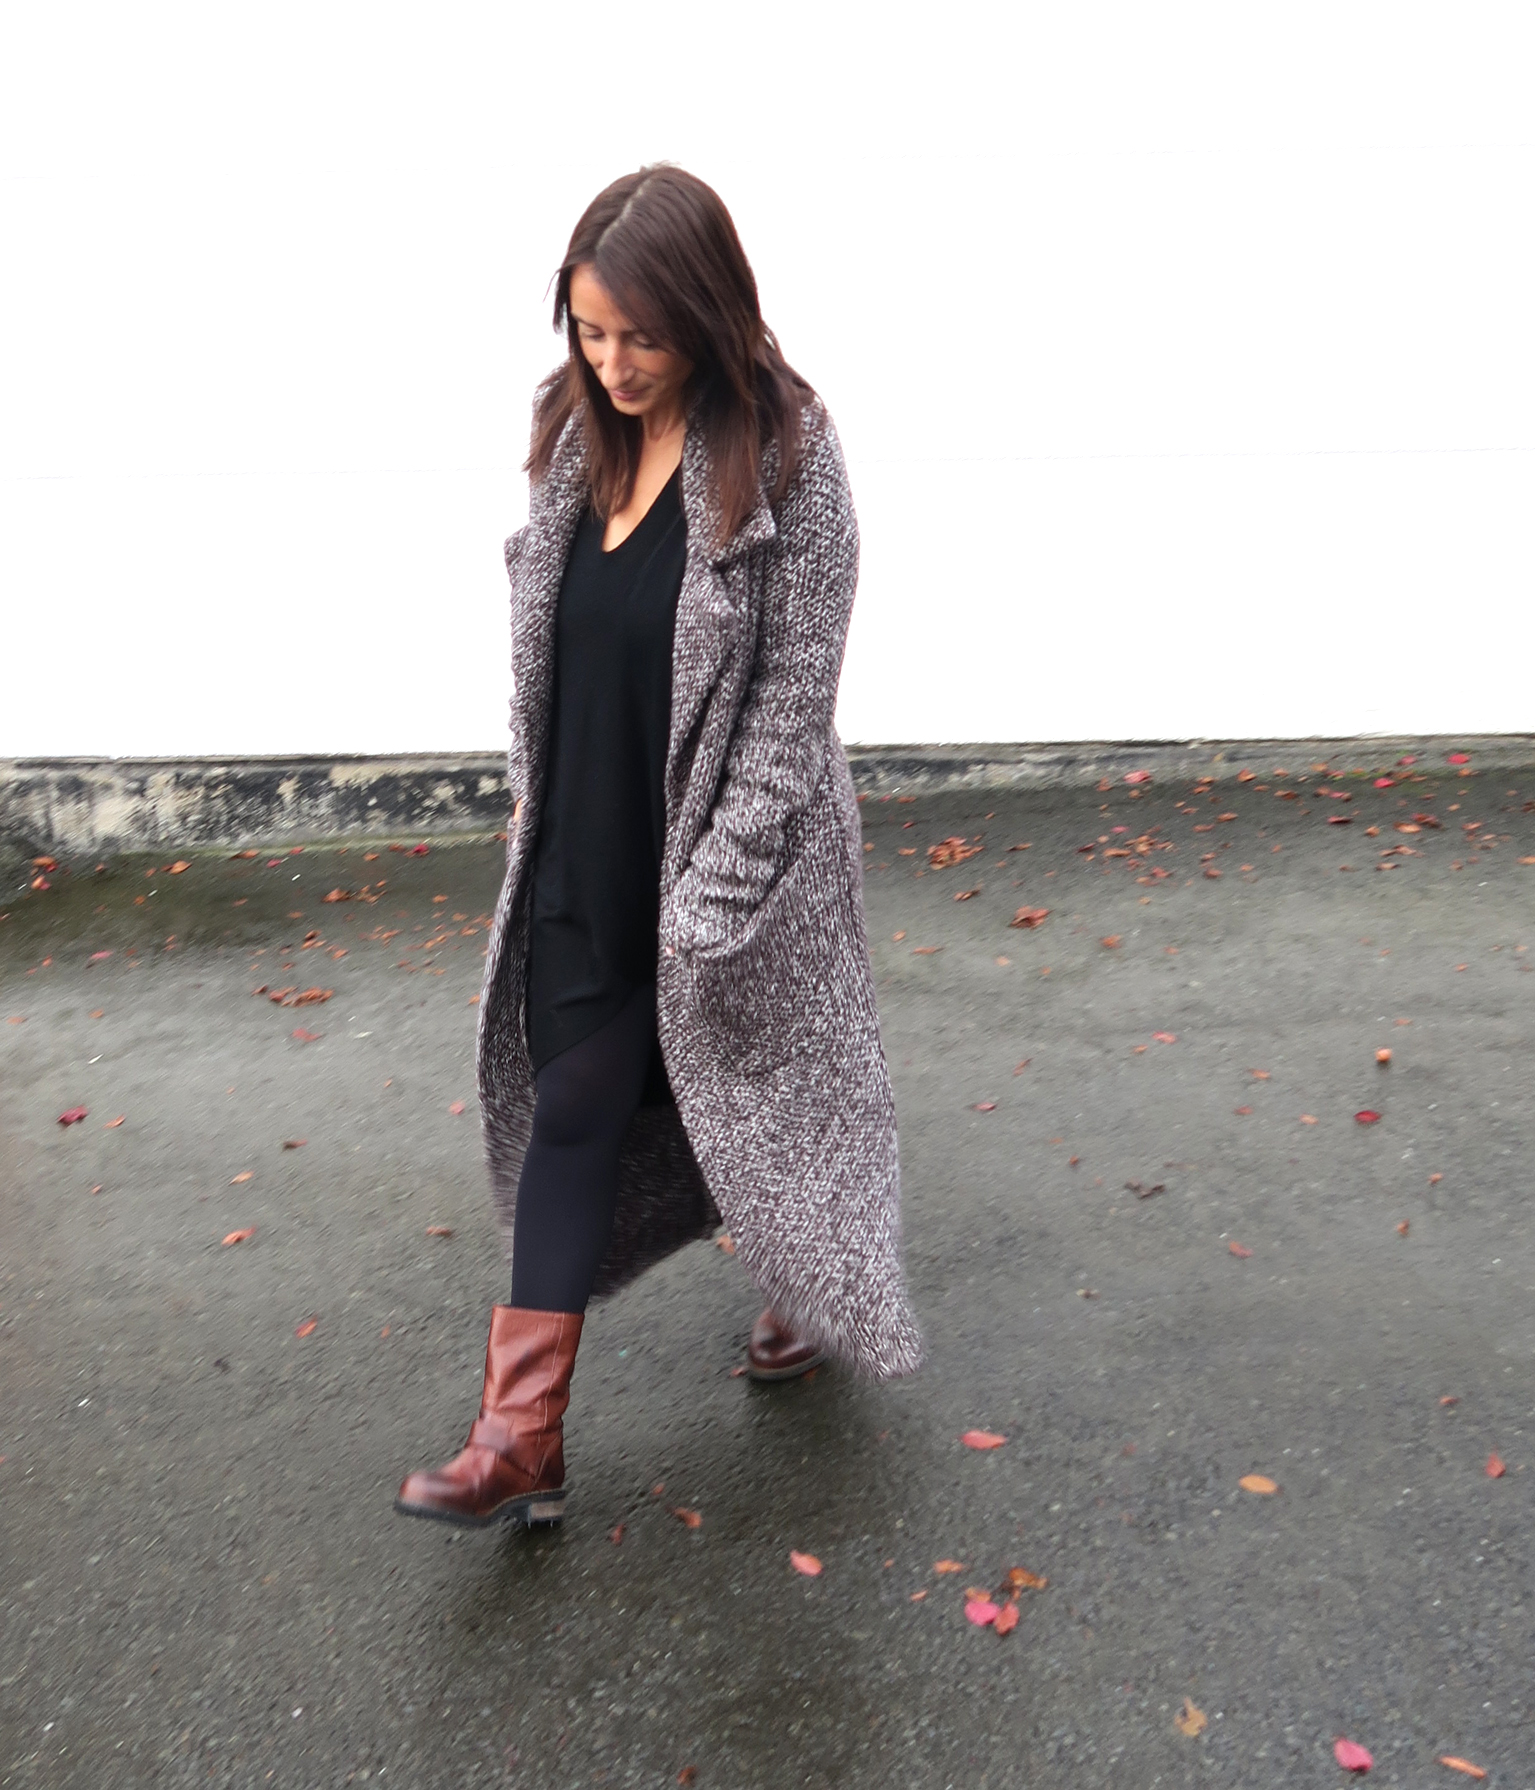 modesalat-blogger-fashionstyle-brands4friends-buffalo-boots-3